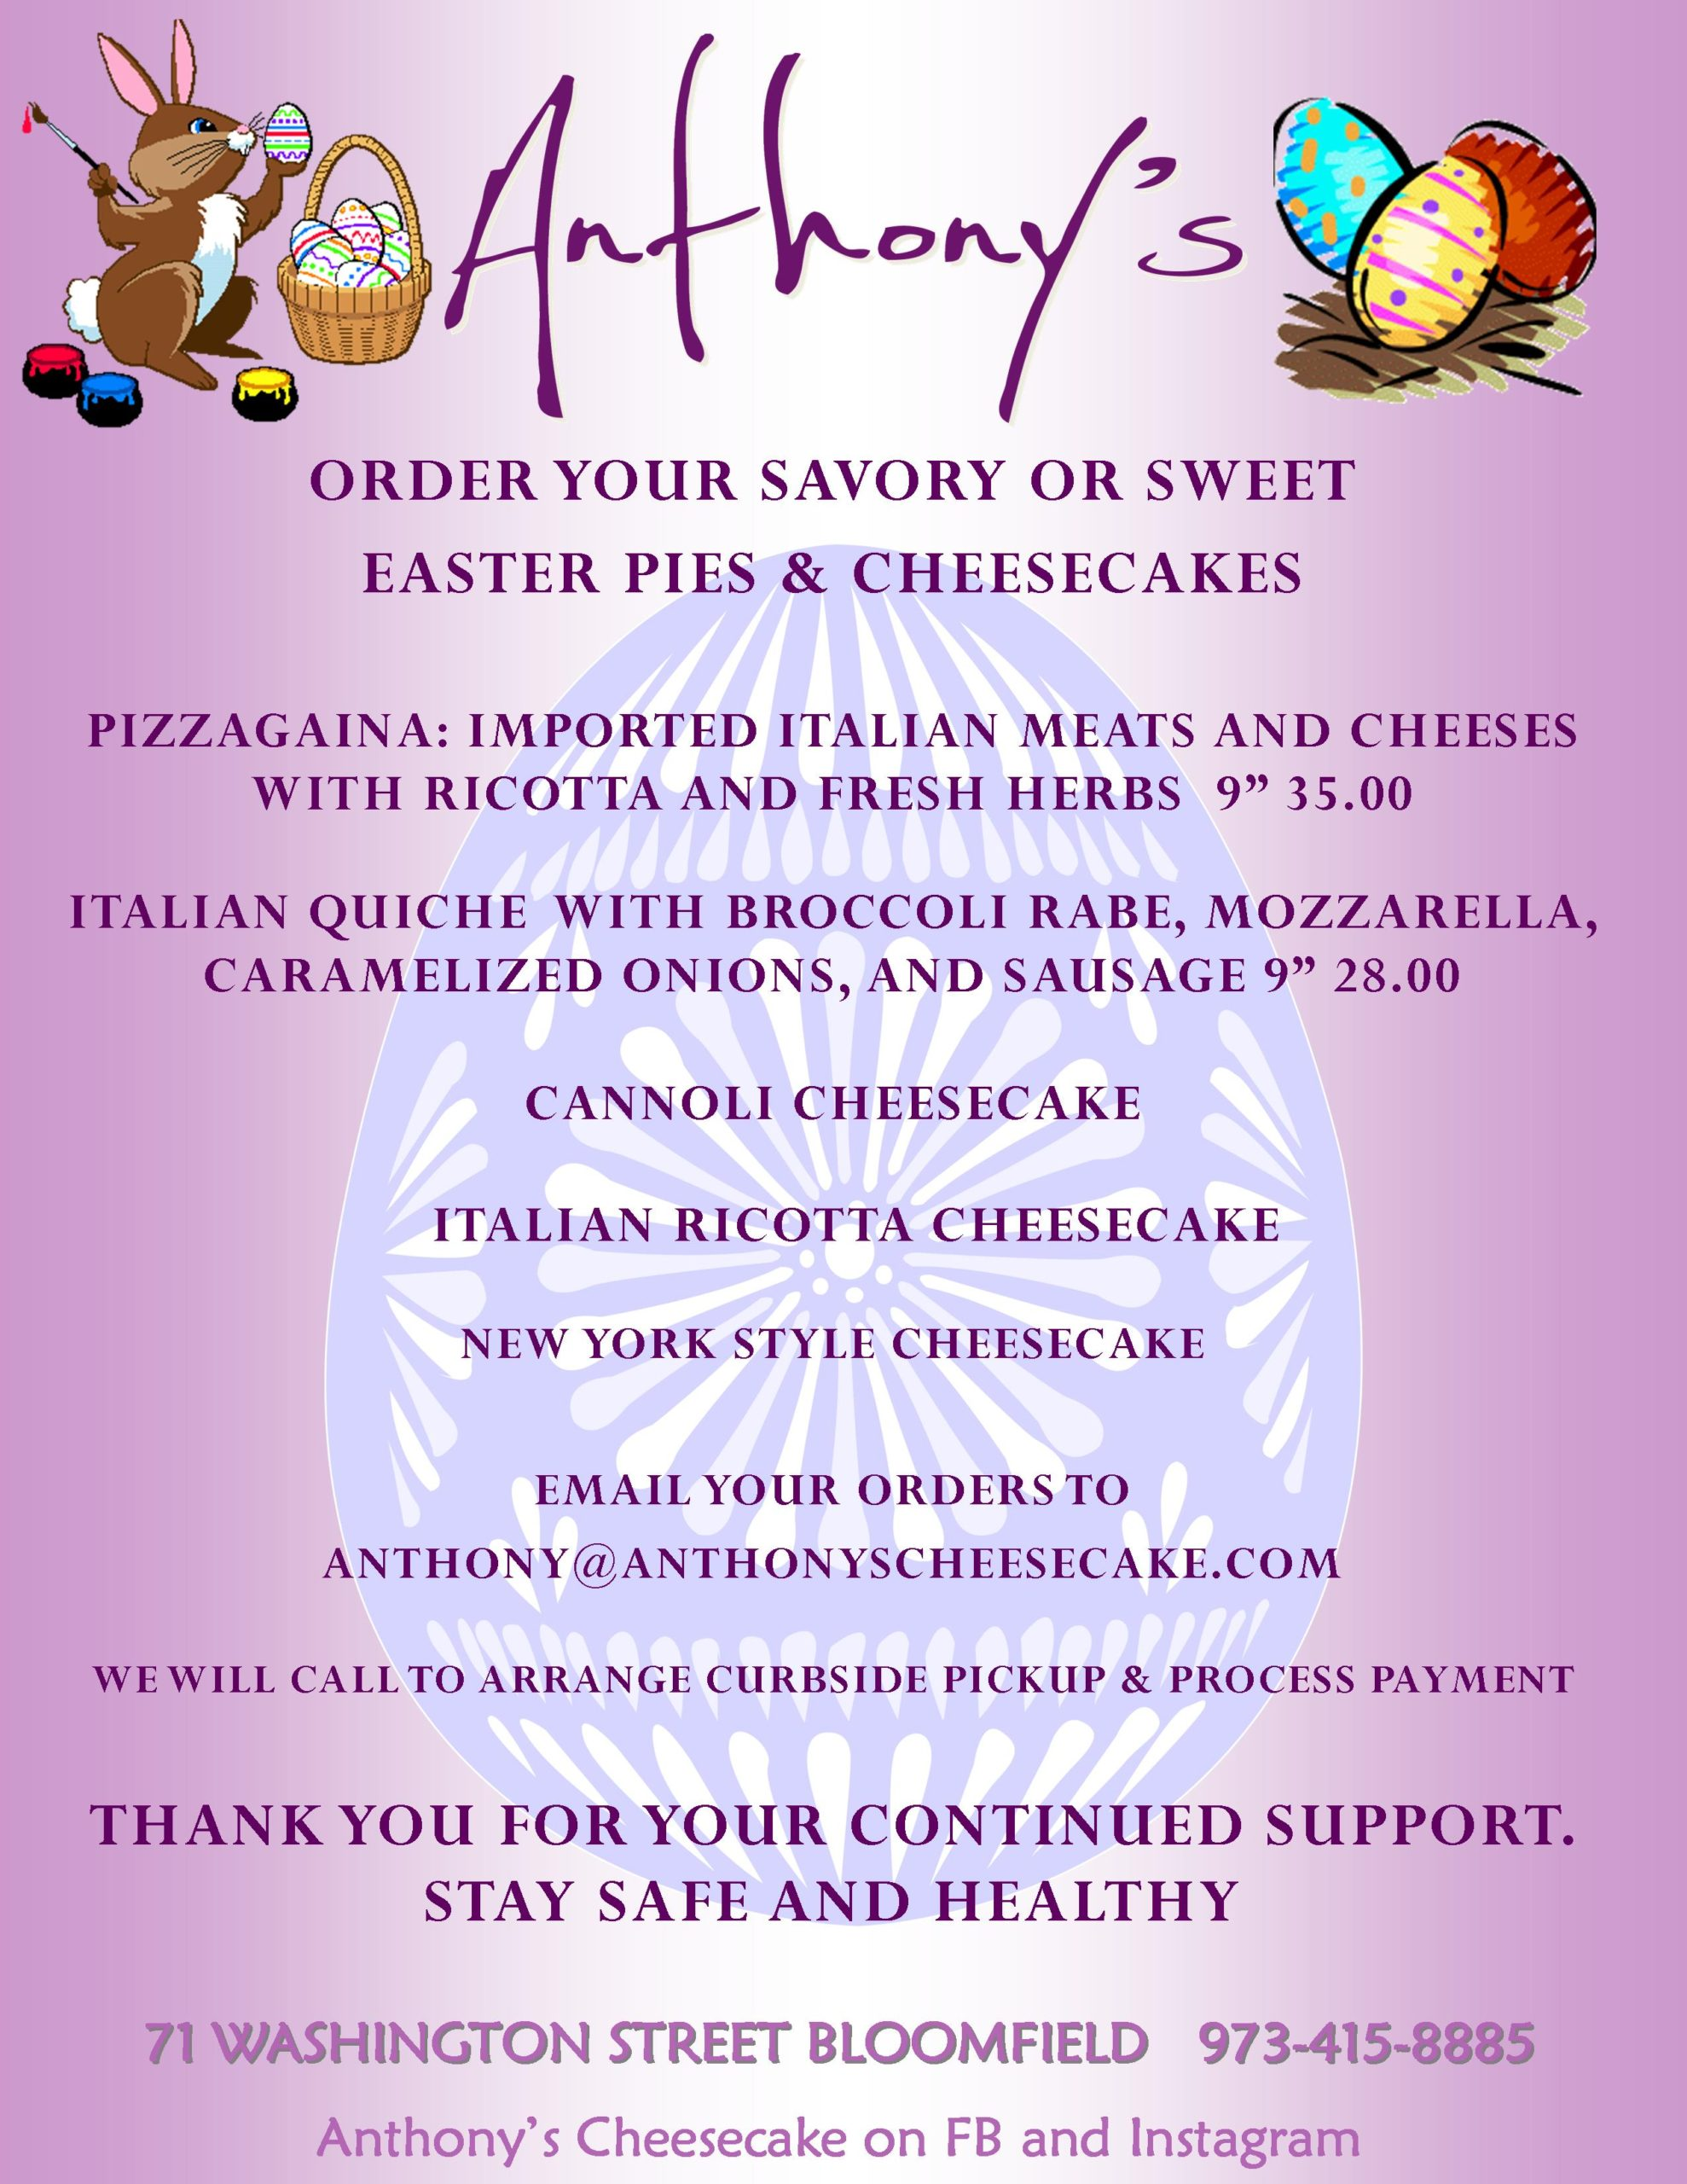 Easter Pies & Cheesecakes 2020